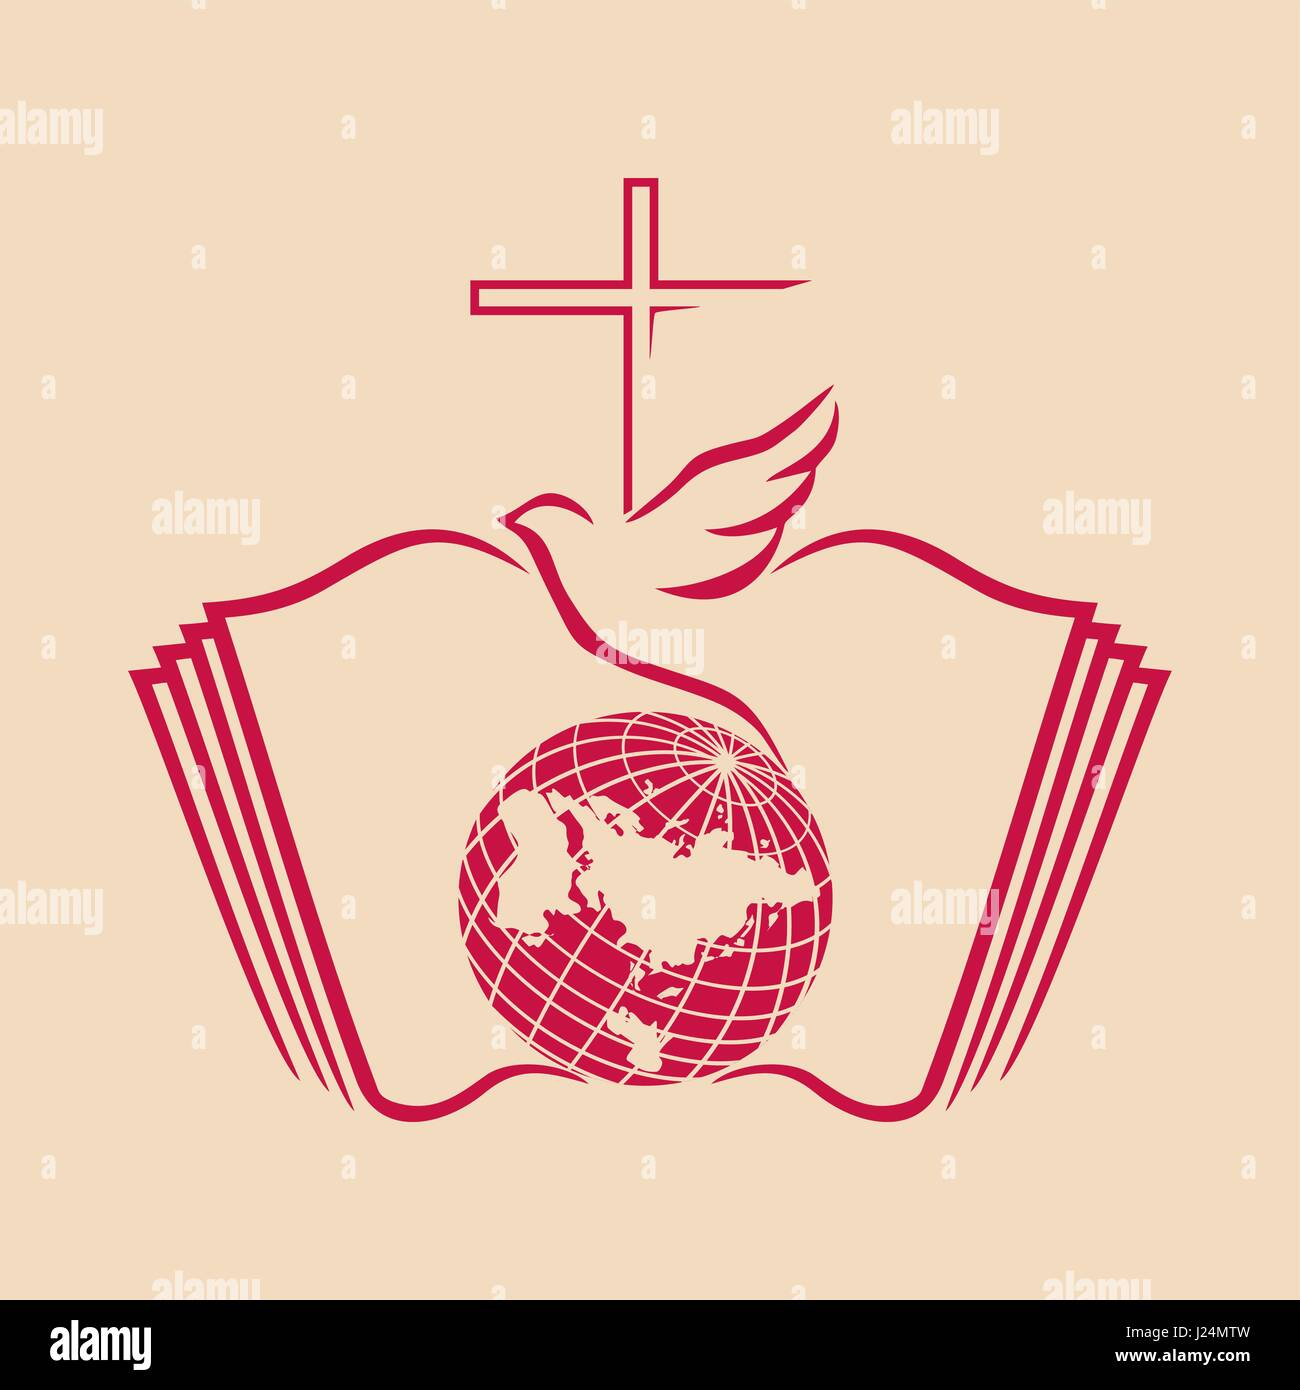 Church logo christian symbols the cross of jesus the globe the church logo christian symbols the cross of jesus the globe the world the open bible and the dove the symbol of the holy spirit buycottarizona Image collections